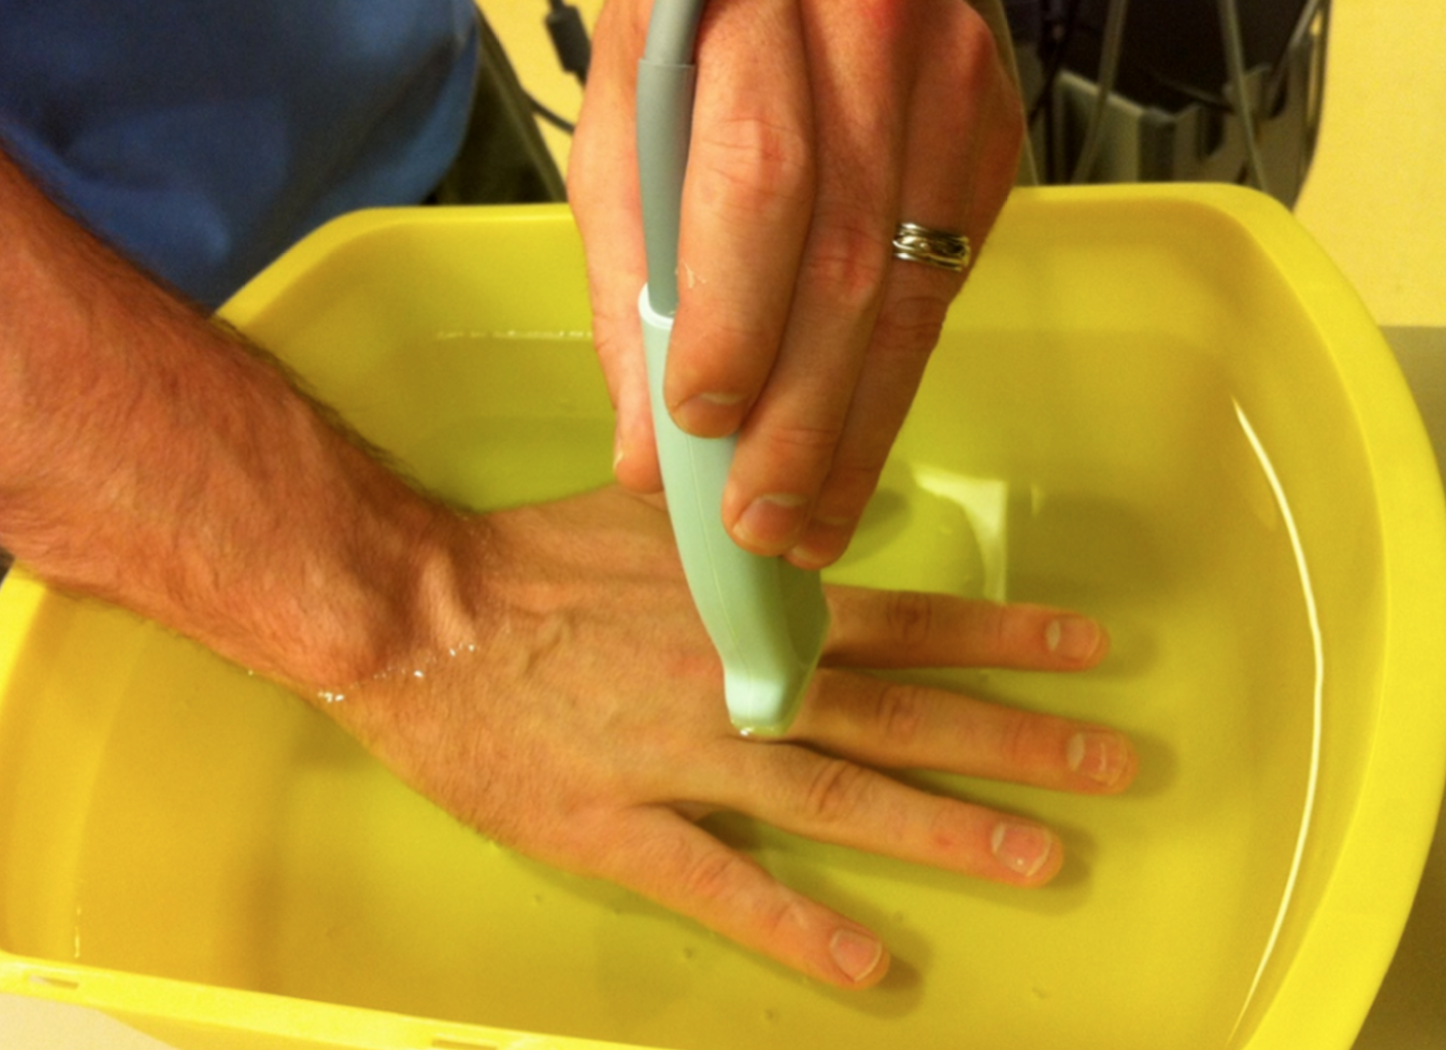 Water bath for small part evaluation. From  Introduction to Bedside Ultrasound